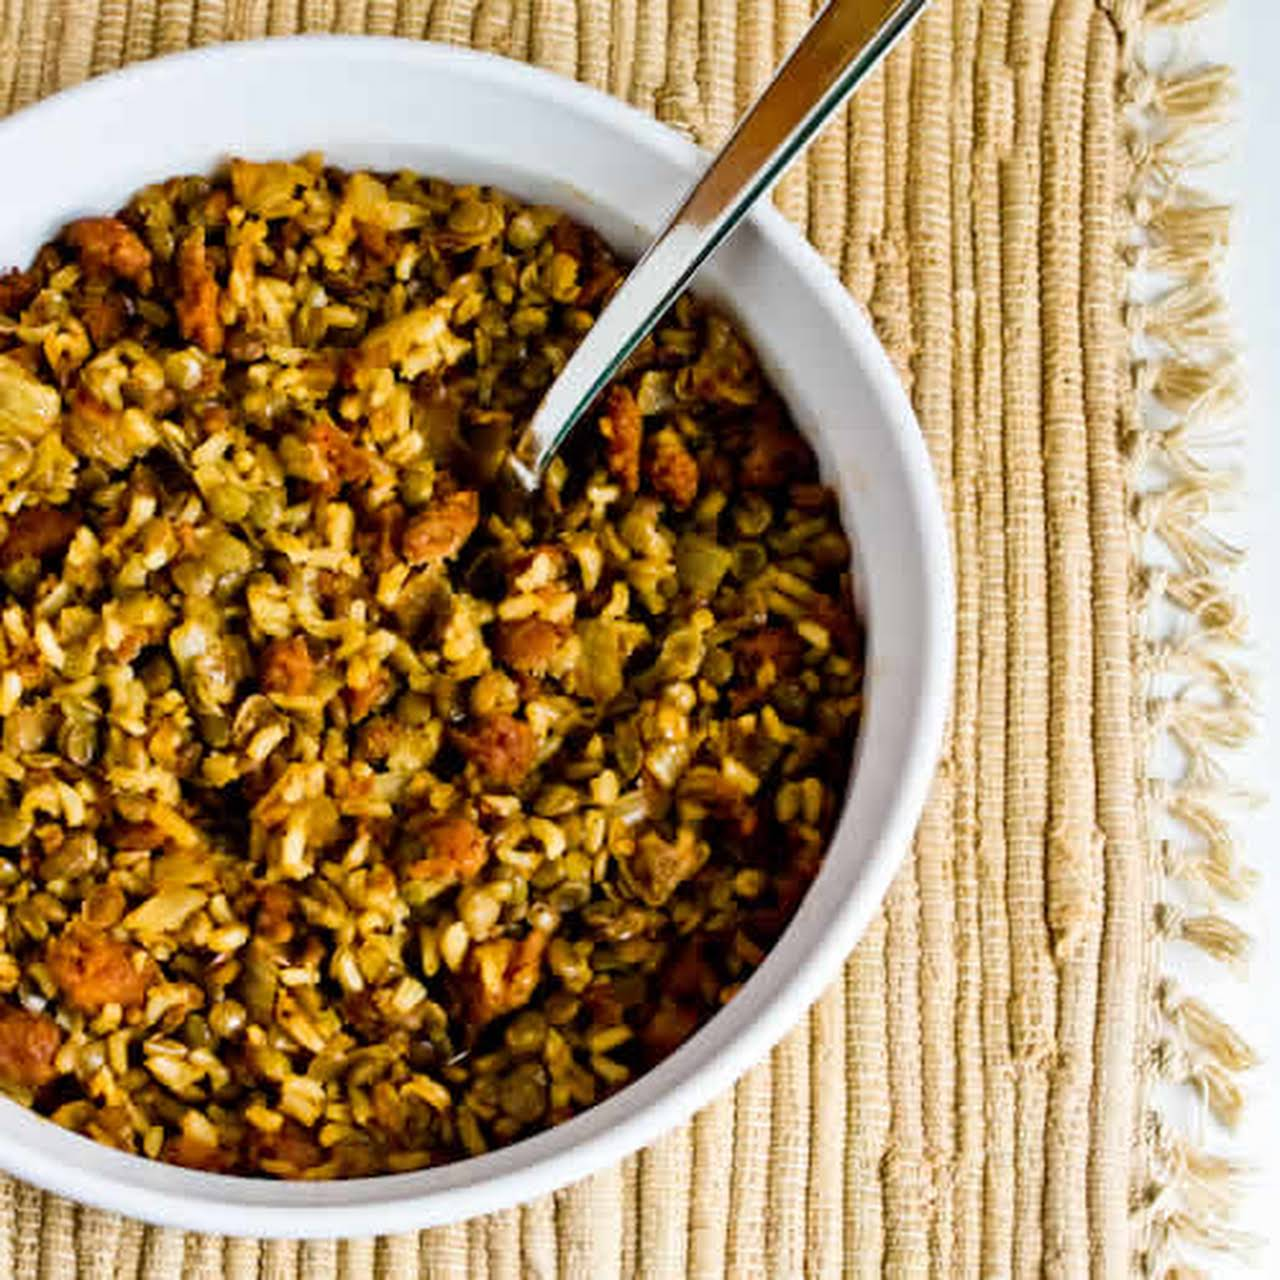 Casserole of Lentils, Rice, and Sausage